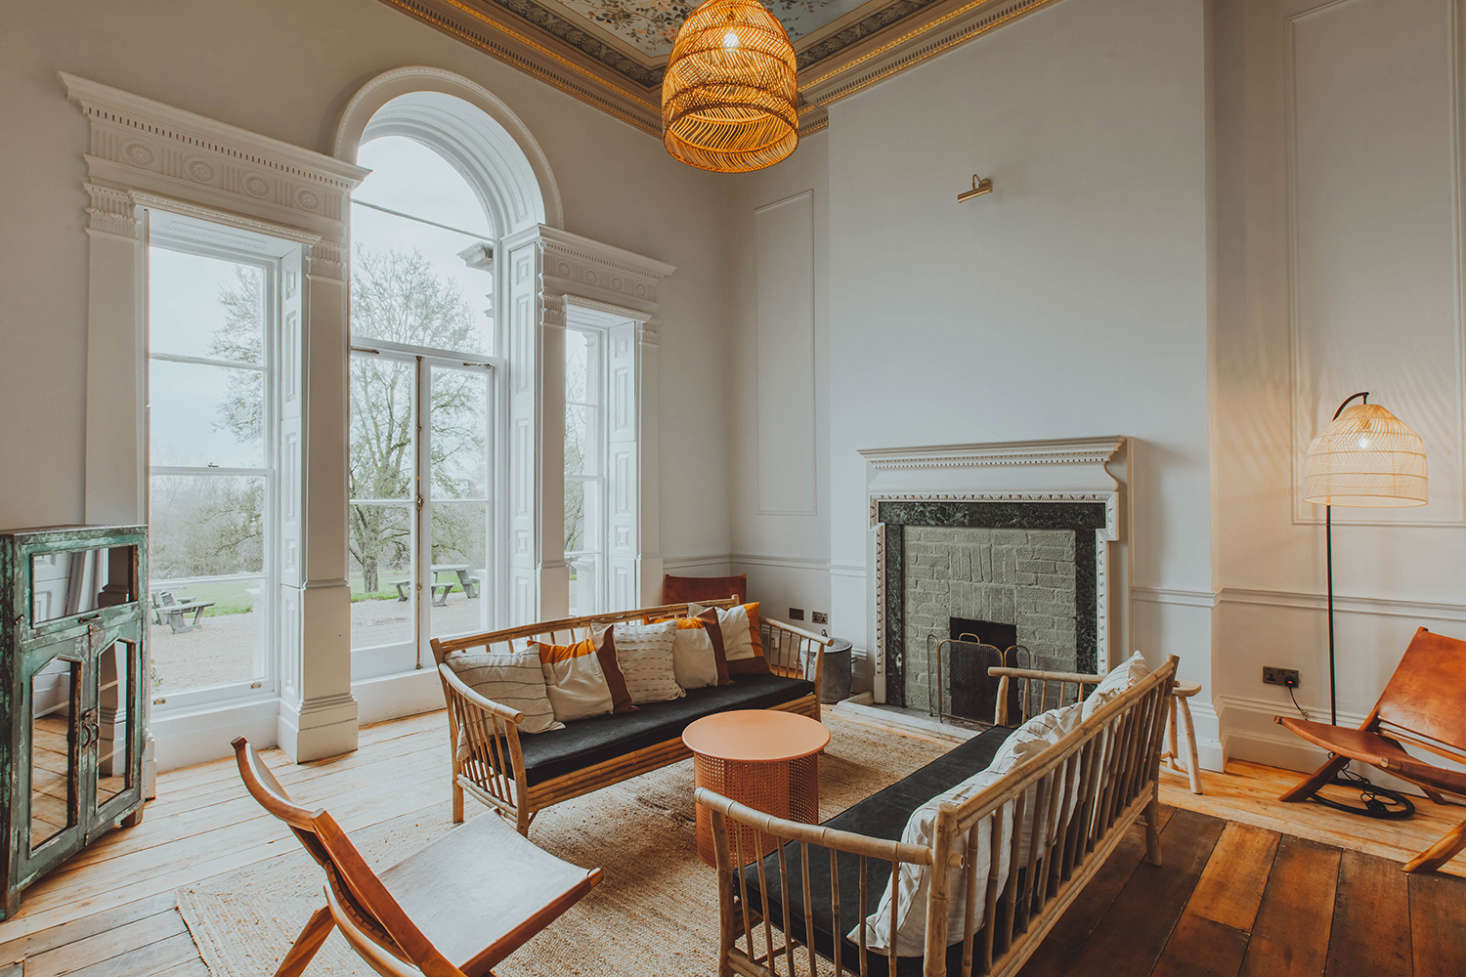 Another sitting room overlooks the gardens.